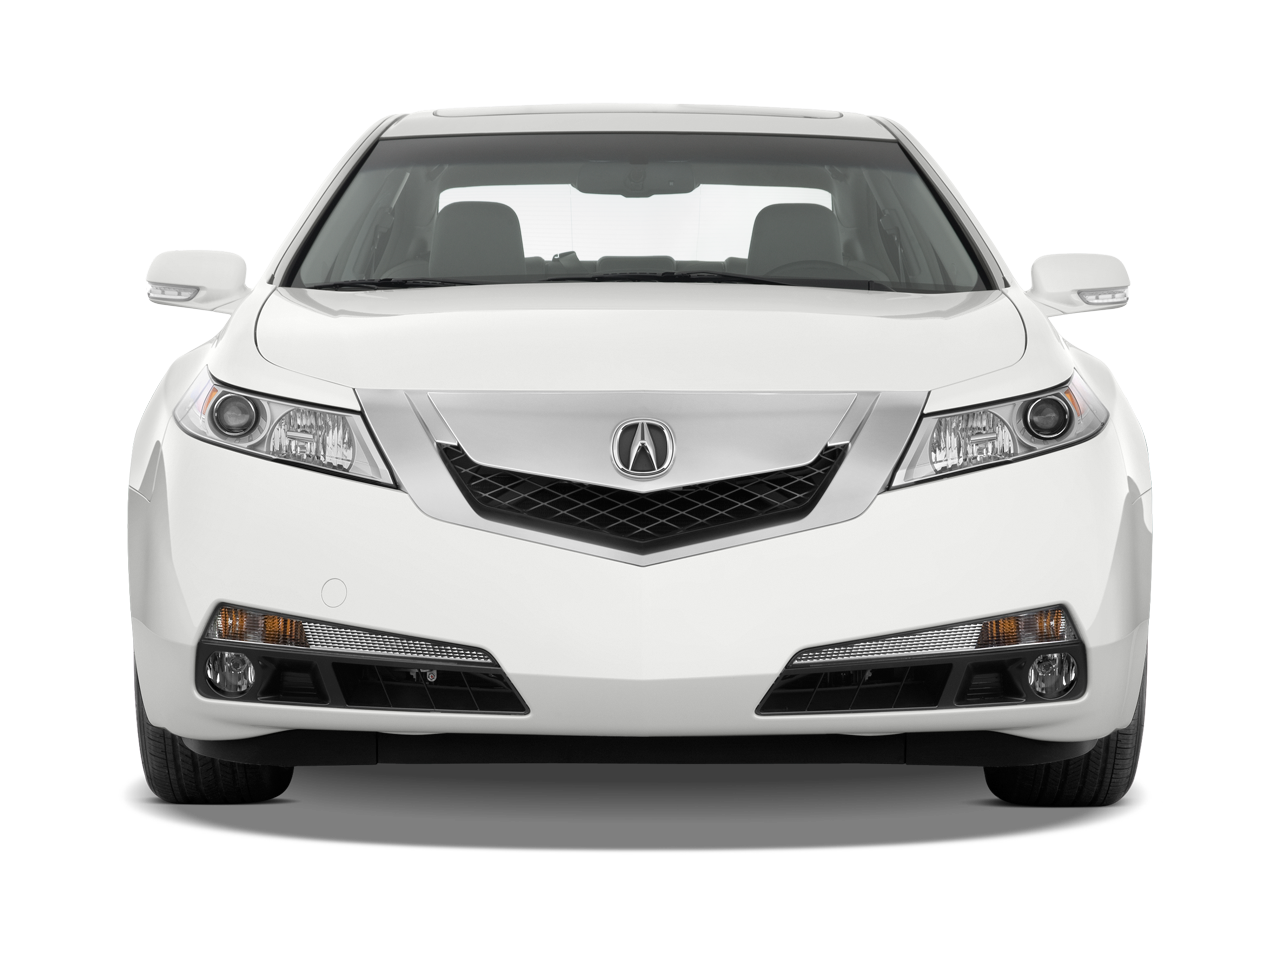 uploads acura acura PNG12 3